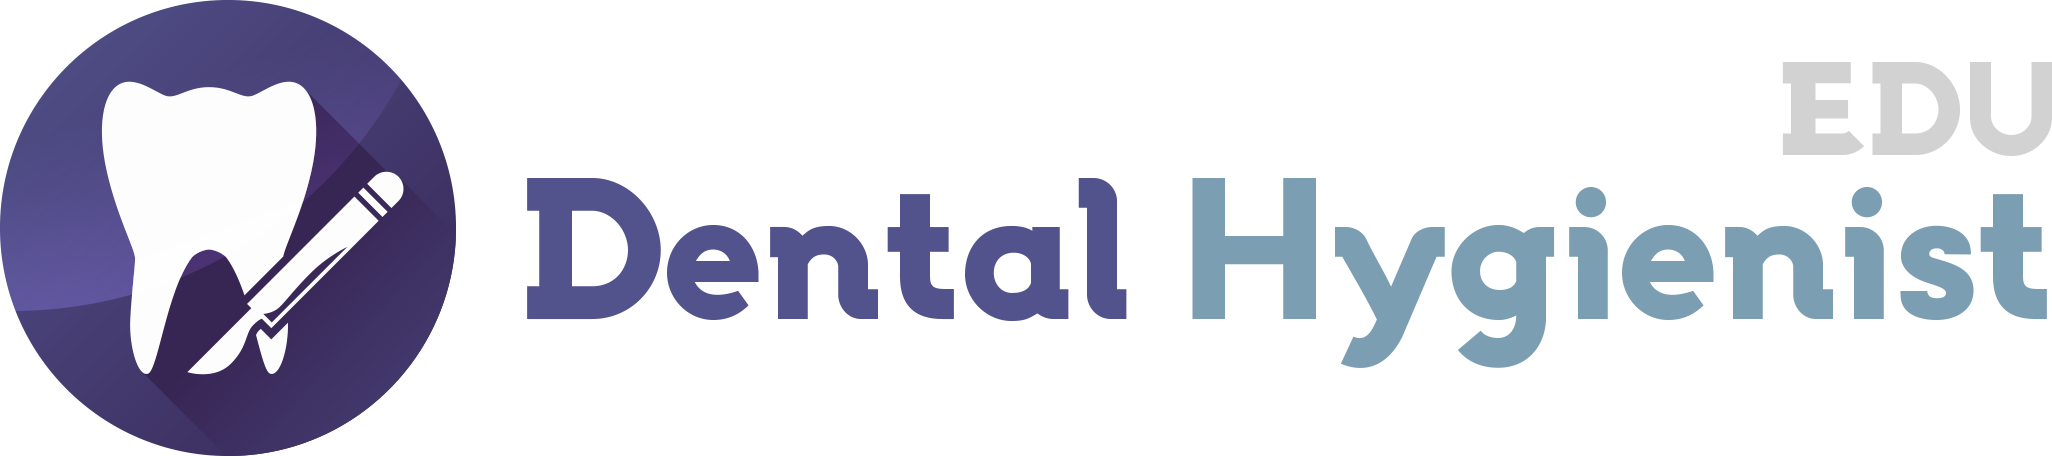 Dental Hygienist Education logo